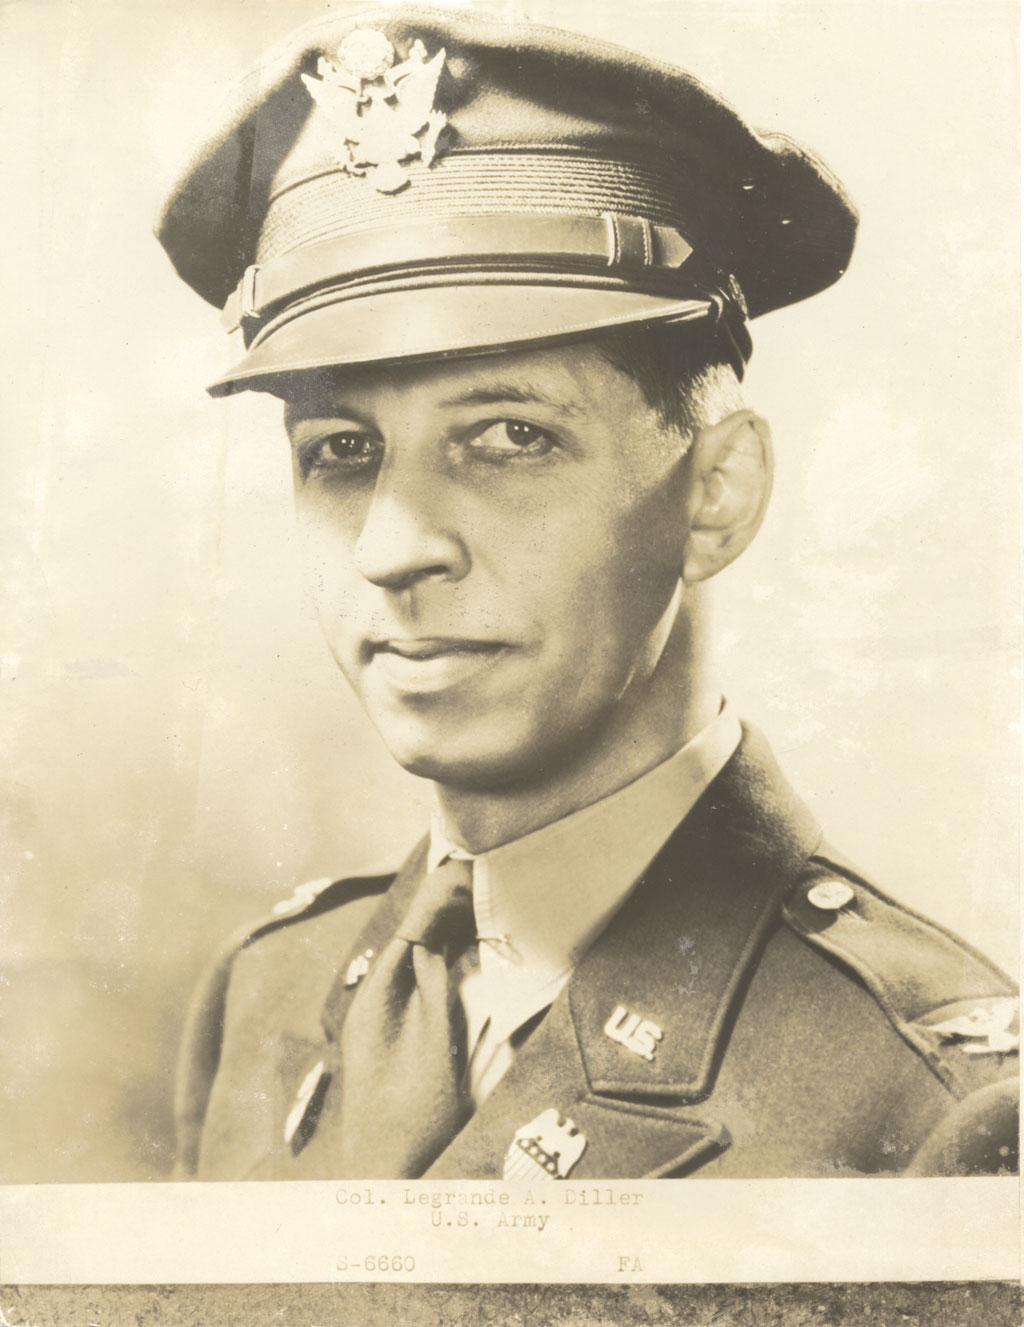 Colonel LeGrande Albert (Pick) Diller